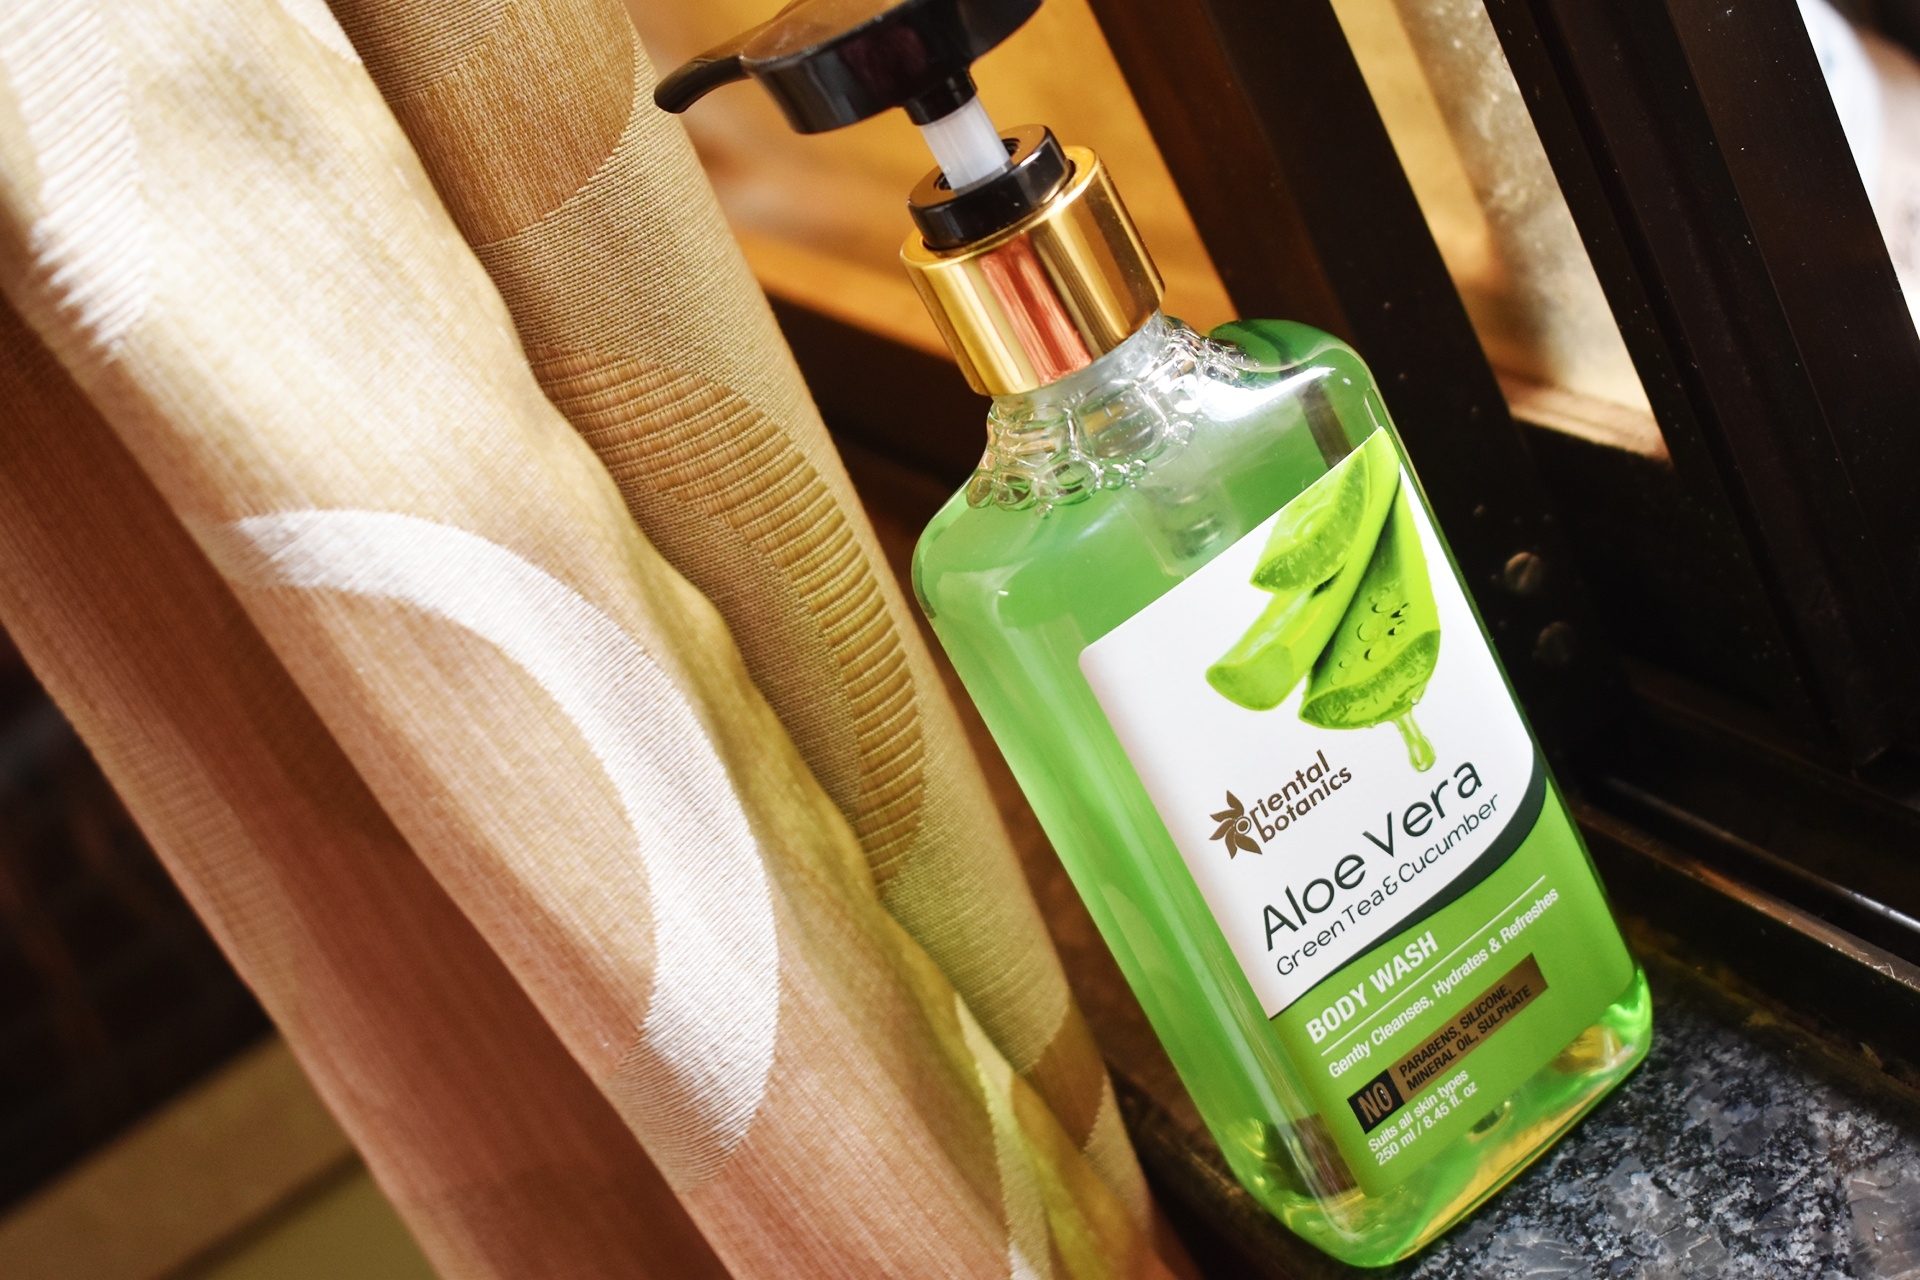 Oriental Botanics Aloe Vera Green Tea & Cucumber Body Wash-Best Aloe-Cucumber Duo-By thatkohlgirl-1